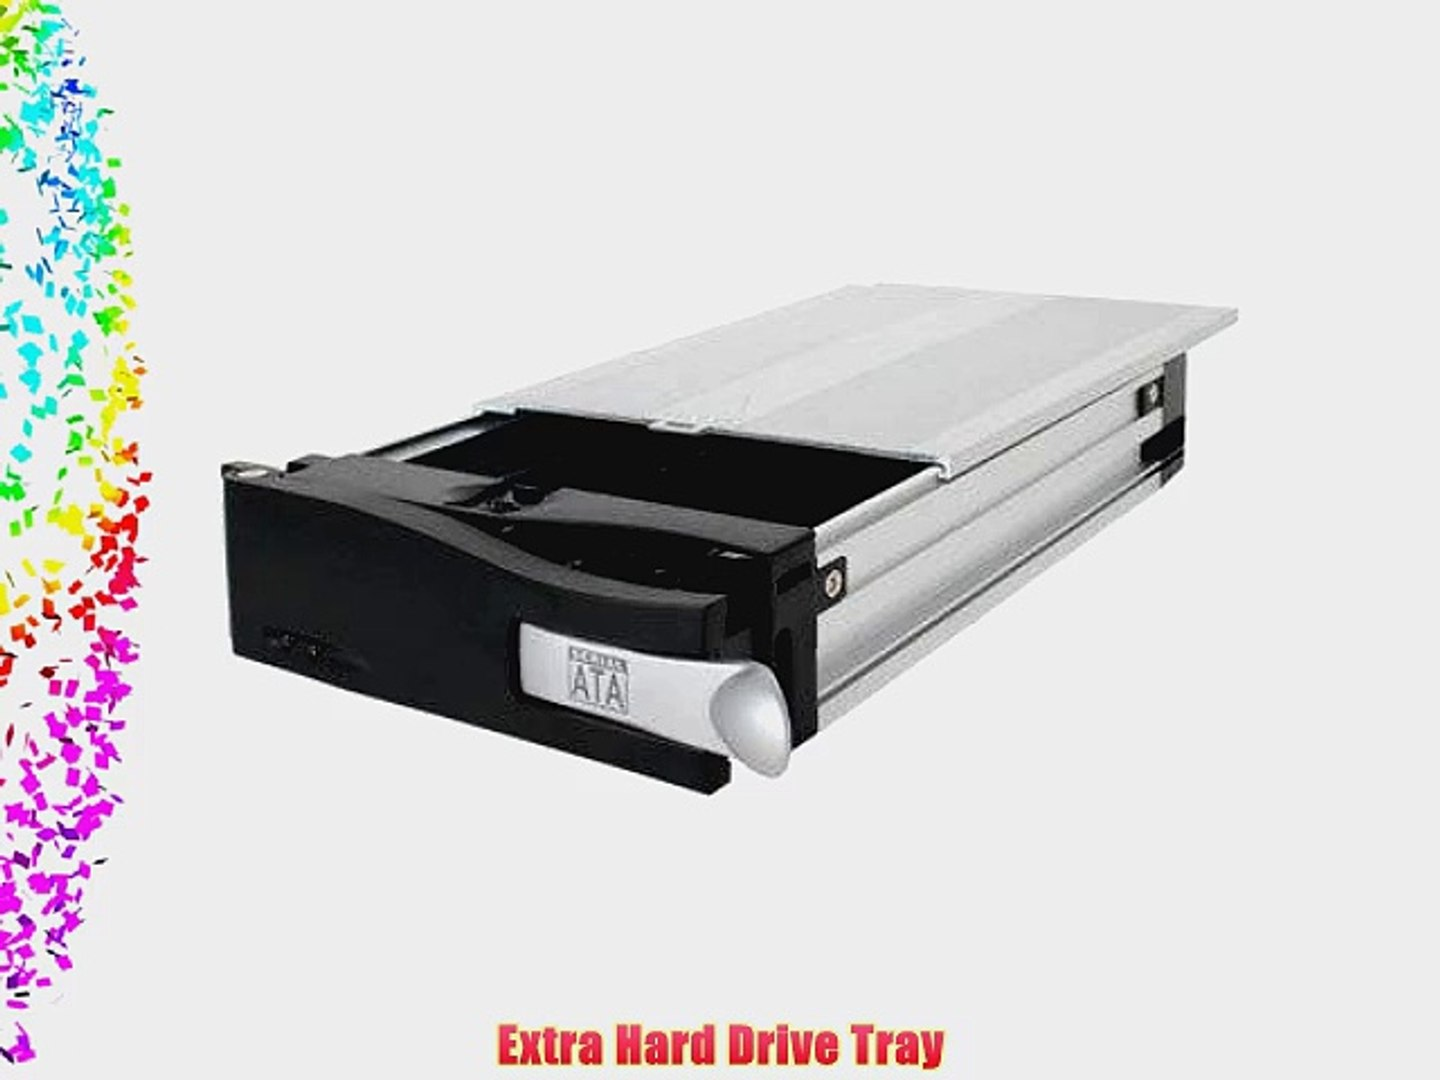 TowerRAID Removable Hard Drive Tray